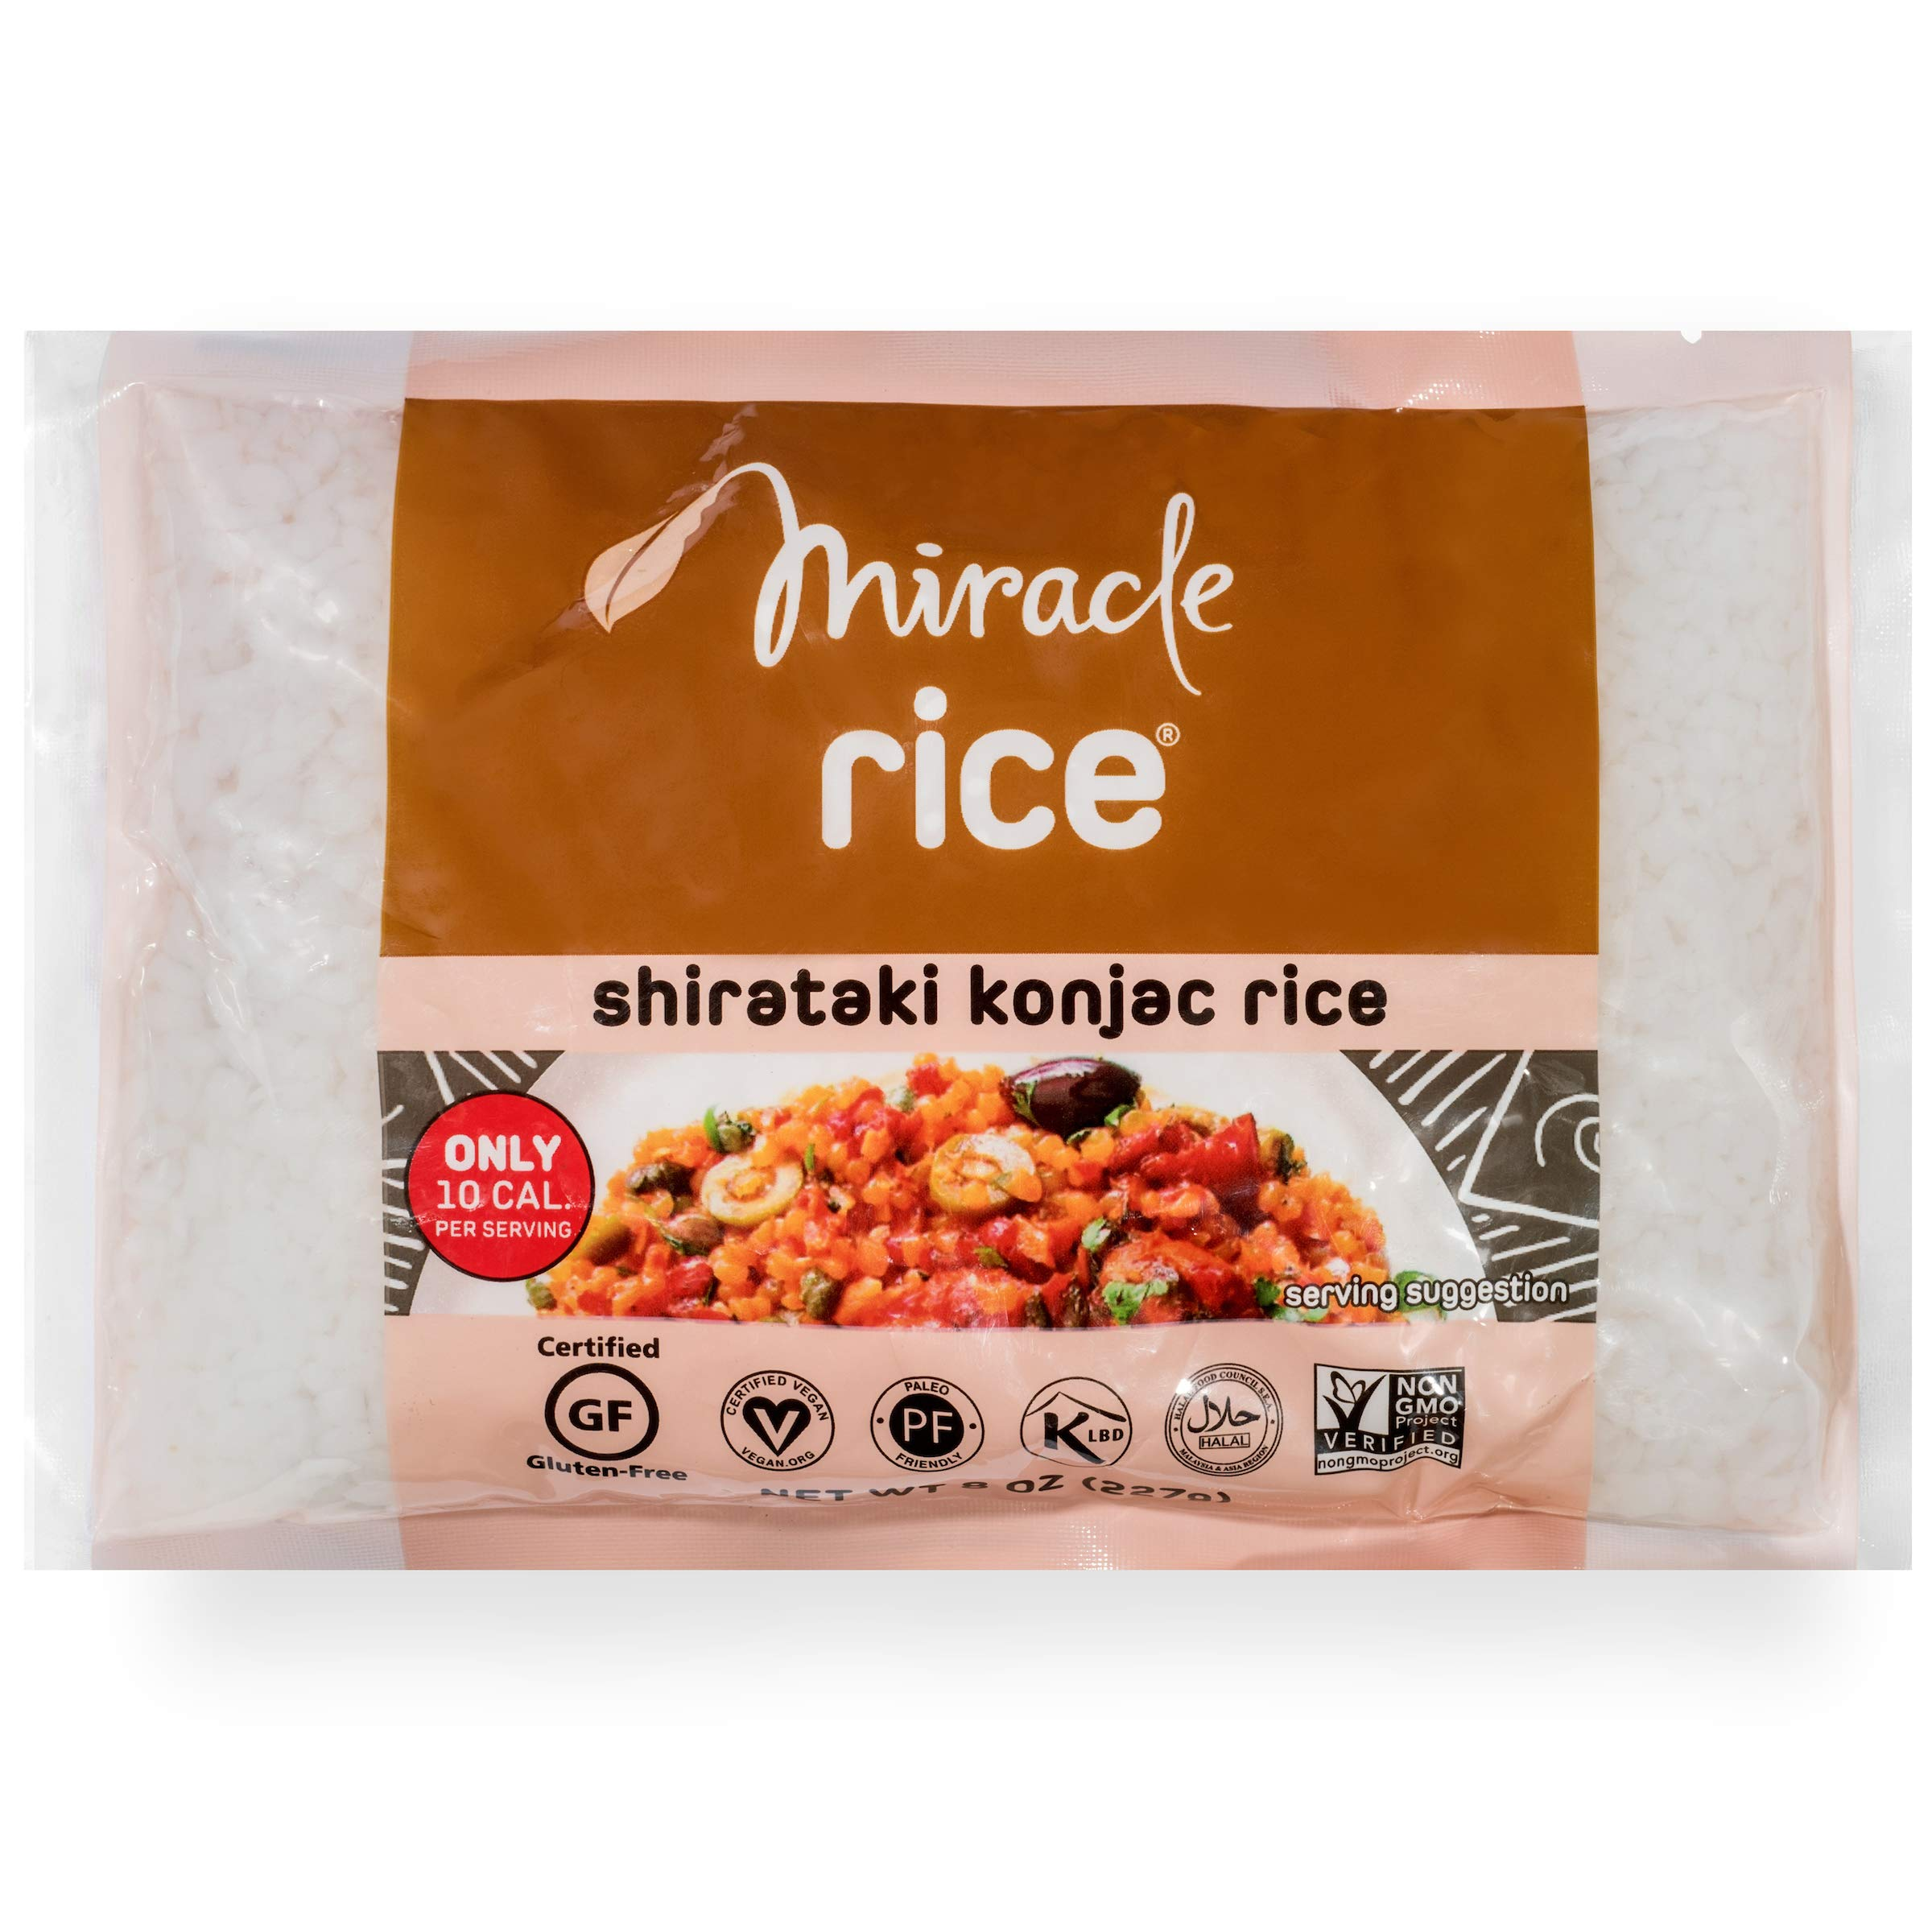 Amazon.com : Miracle Noodle Zero Carb, Gluten Free Shirataki Rice  (Packaging May Vary), 8-Ounce, (Pack of 6) : Packaged Asian Dishes :  Grocery & Gourmet ...